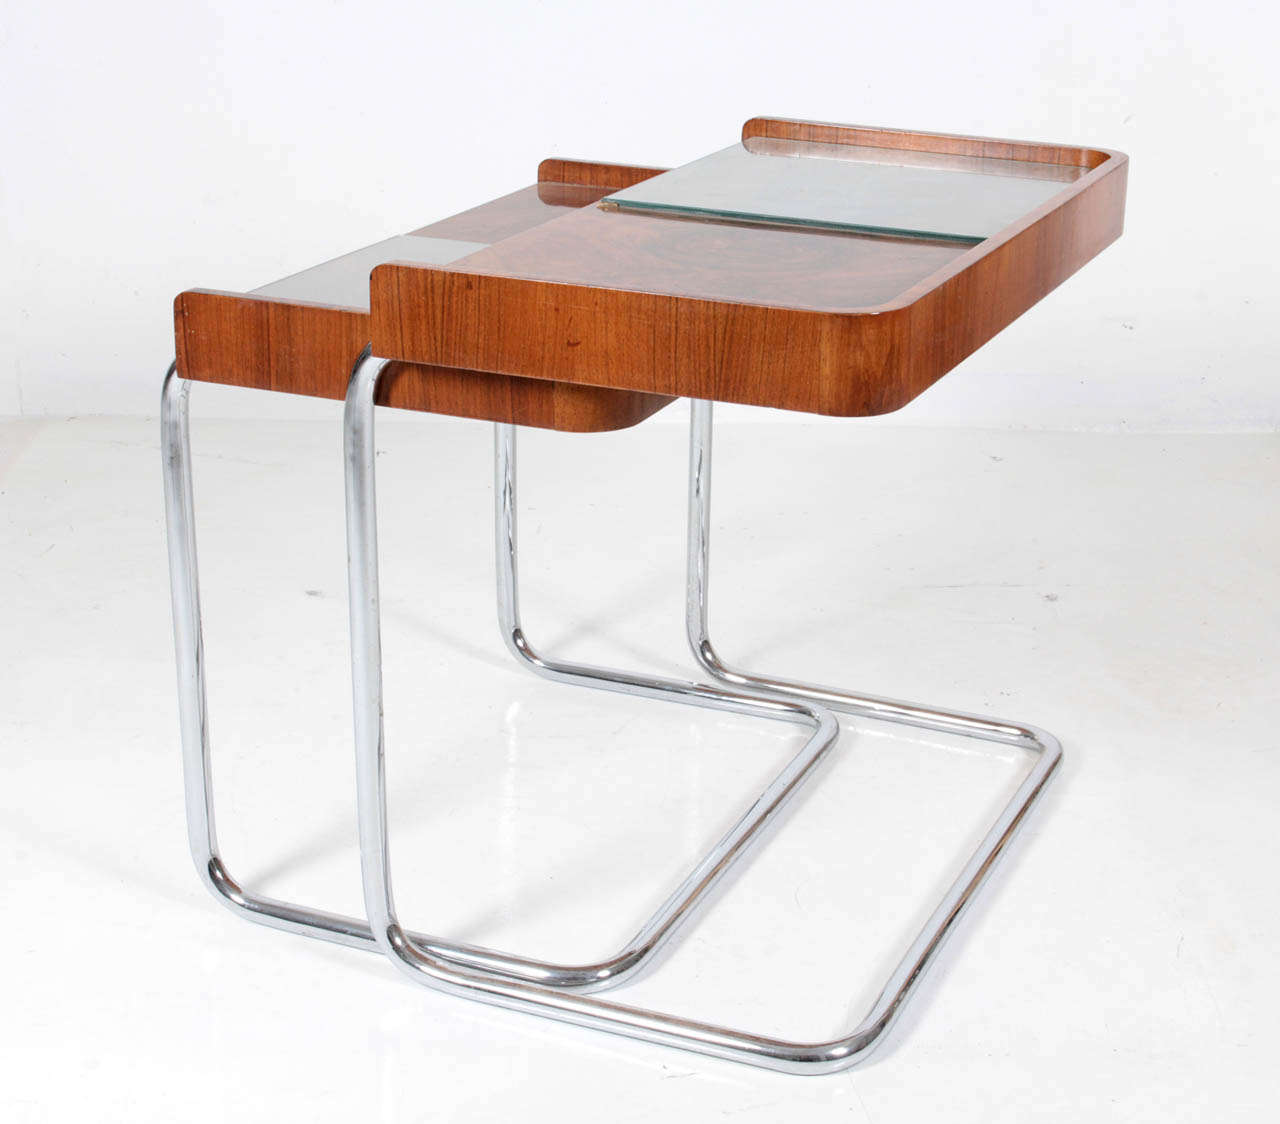 Bauhaus Furniture Beautiful S Bauhaus German Sled School Chairs By